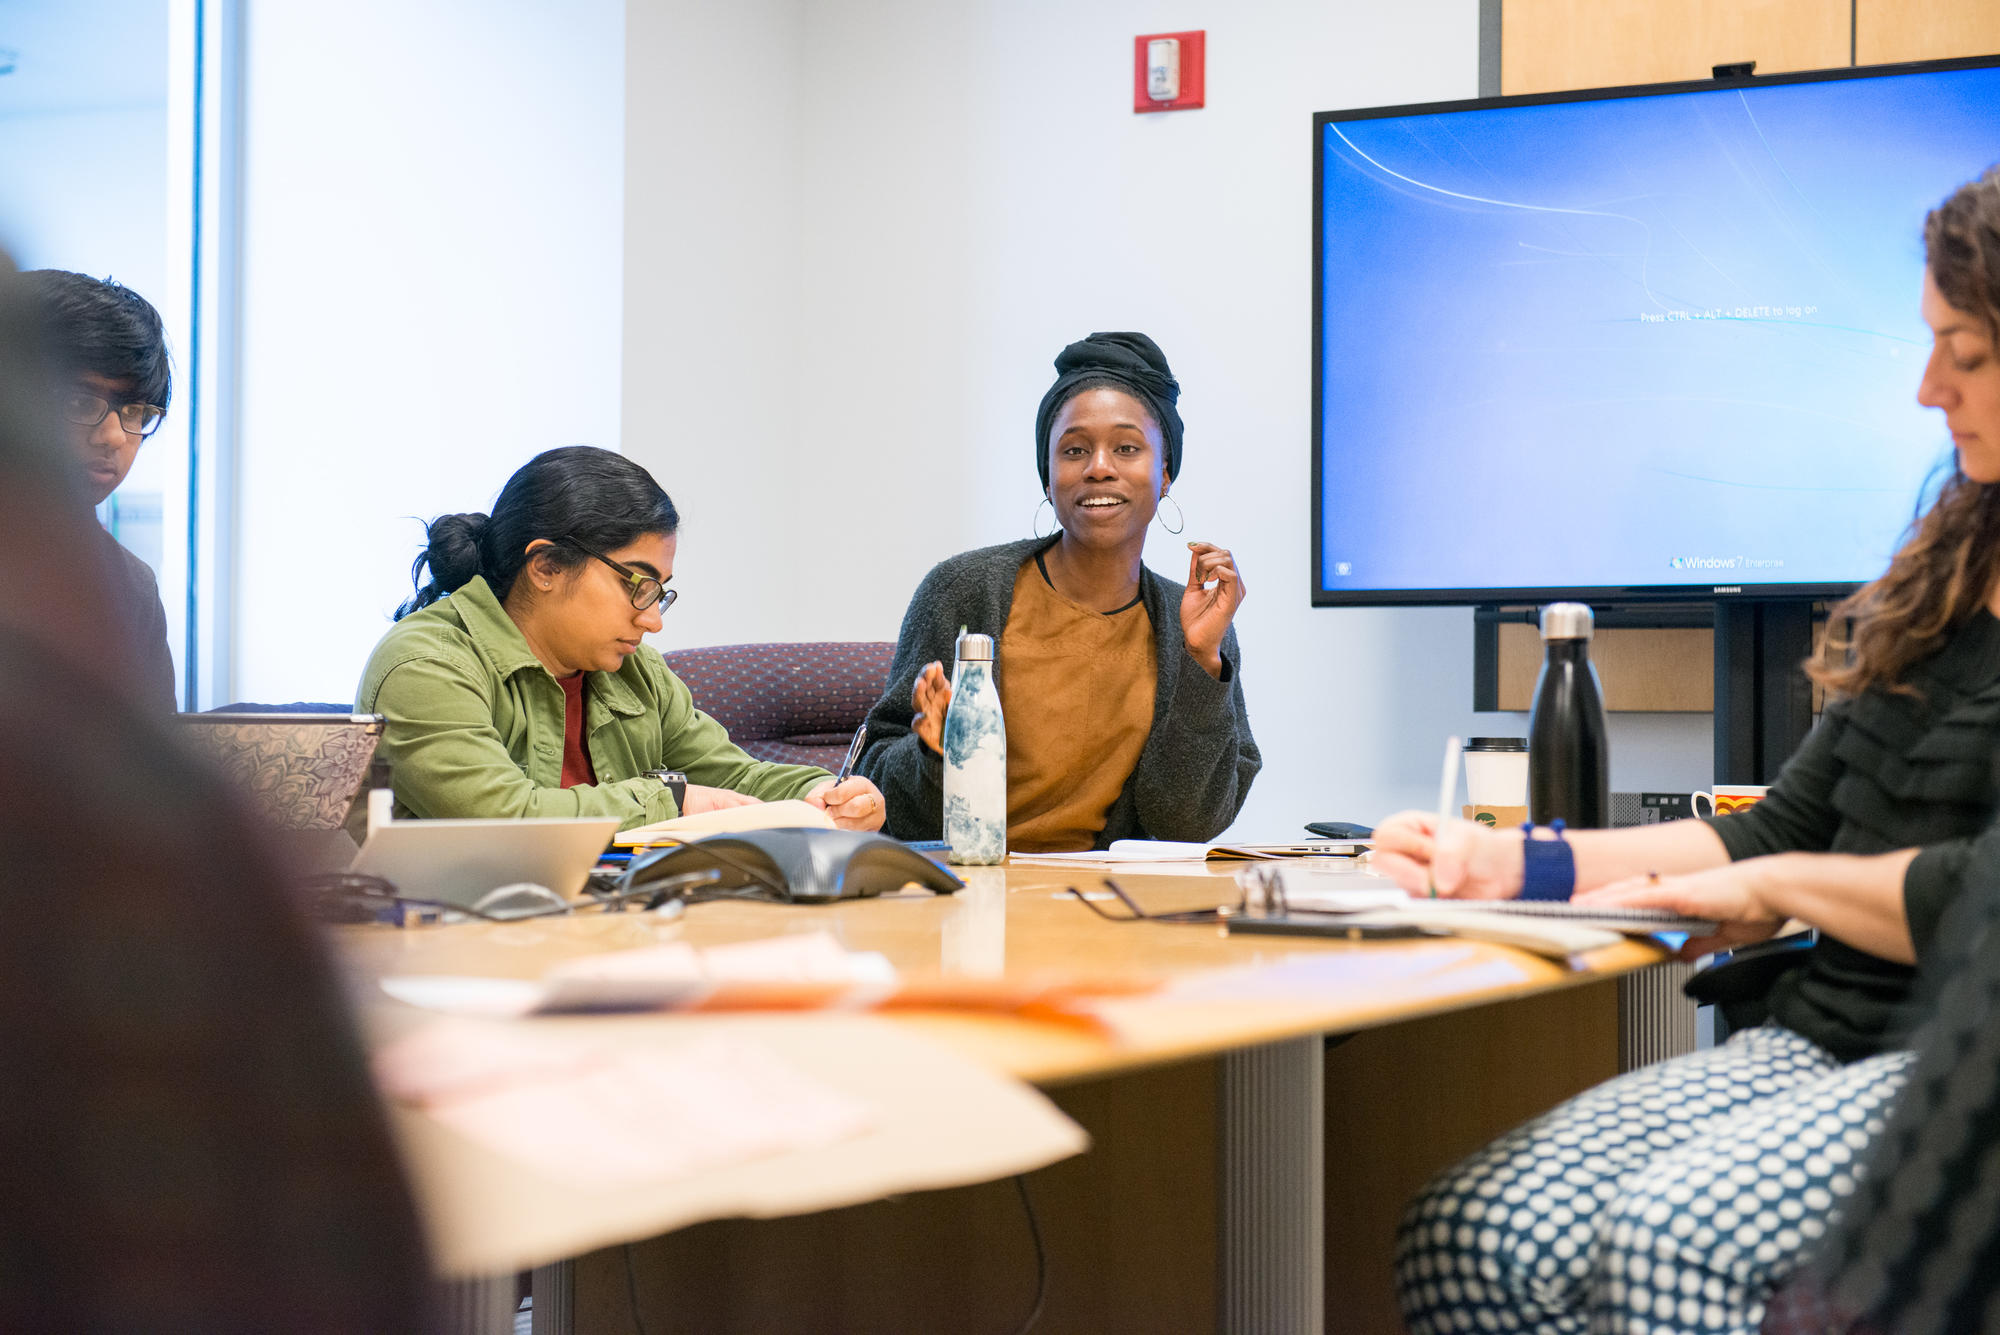 Olin College Academic Advisor Mimi Onuoha leads a class discussion about Map This.